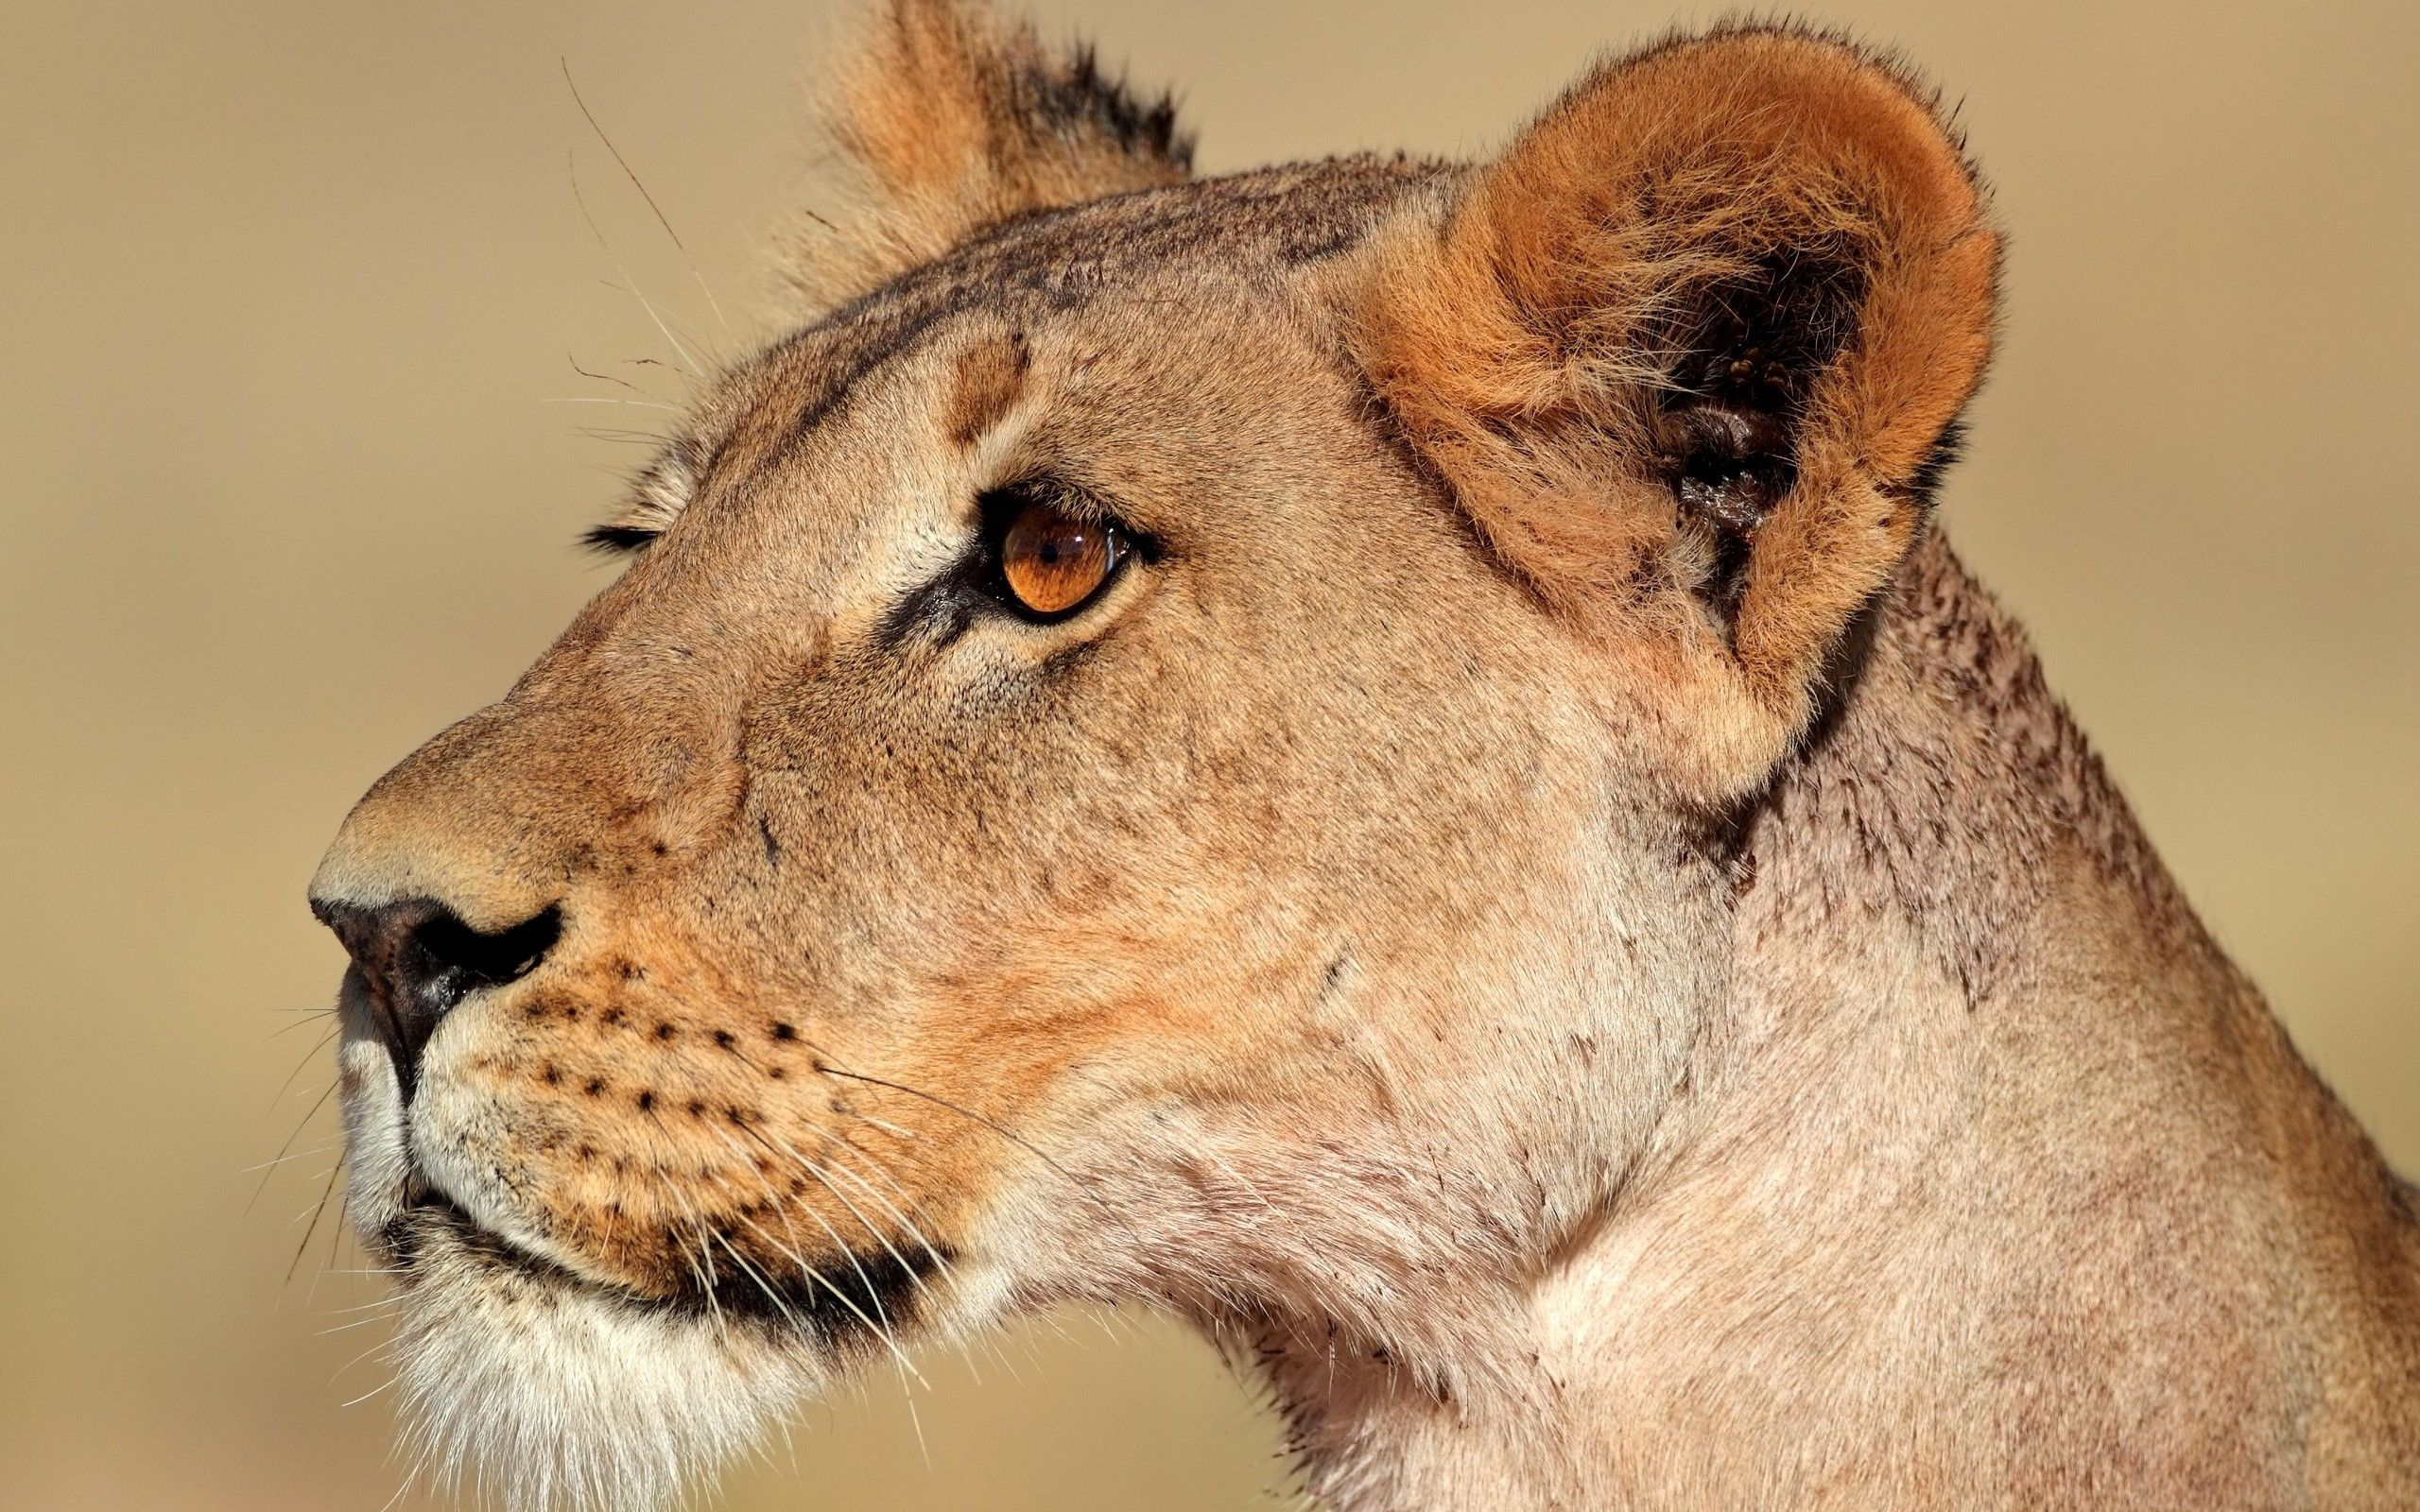 87249 download wallpaper Animals, Lion, Lioness, Muzzle, Profile screensavers and pictures for free